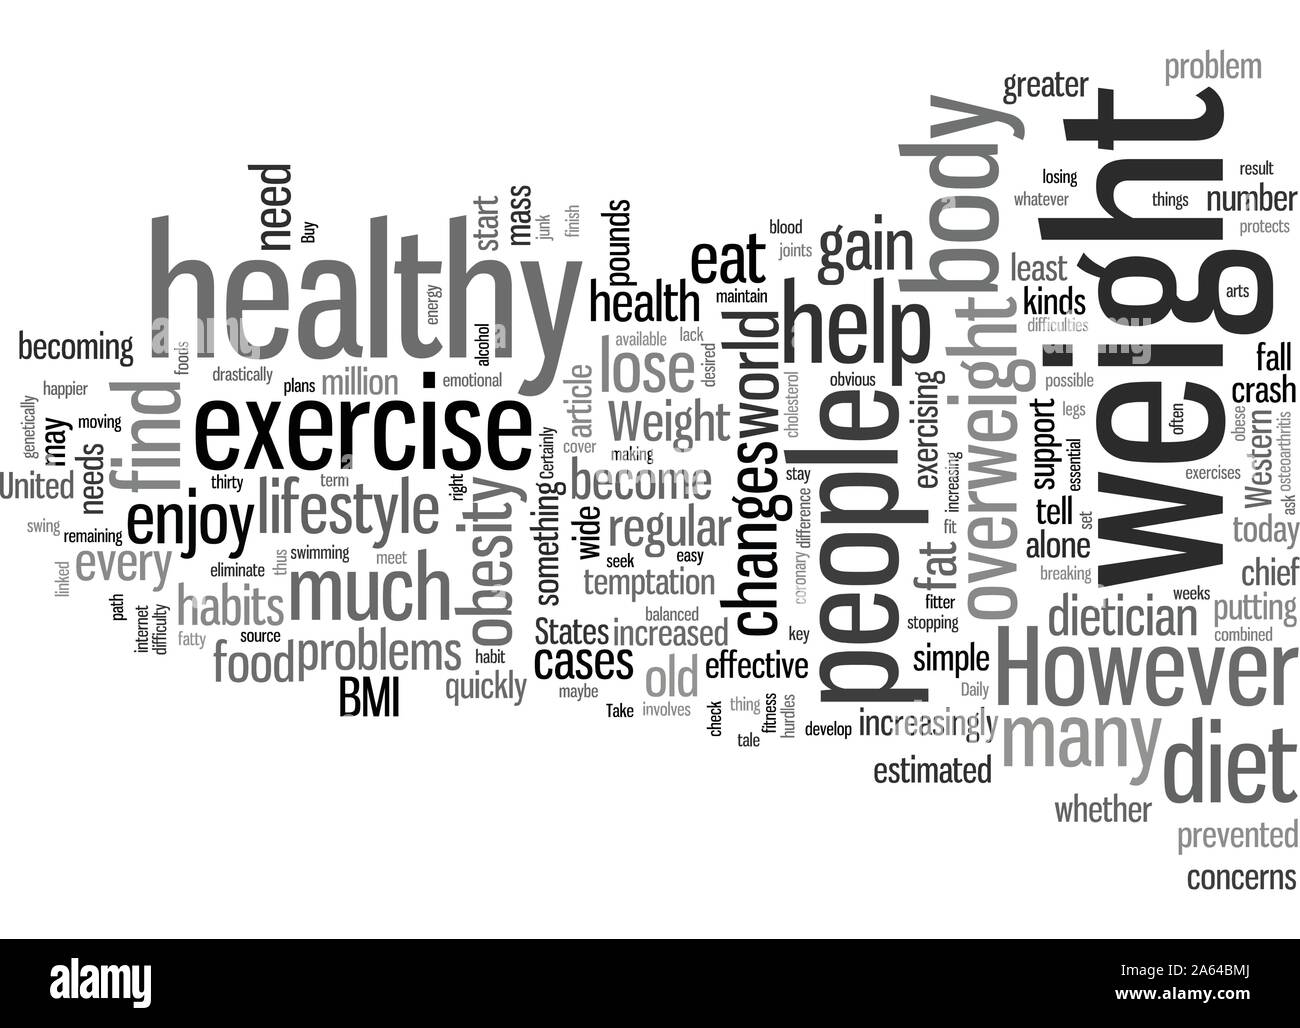 How To Lose Weight The Healthy Way Stock Vector